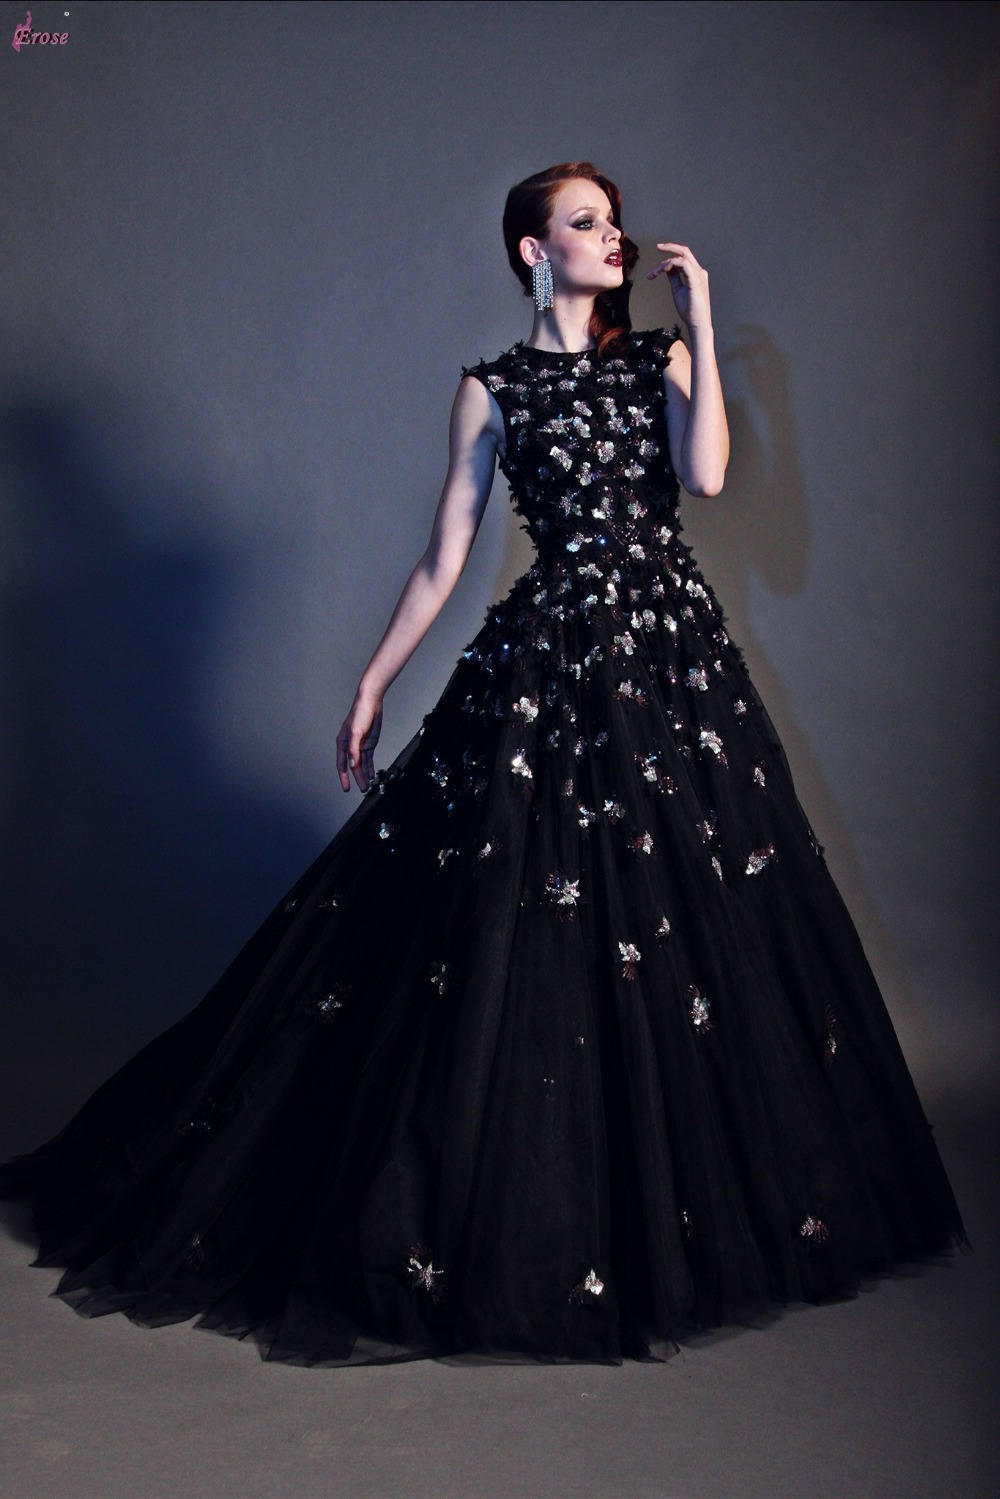 Collection Black Gowns Pictures - Asianfashion